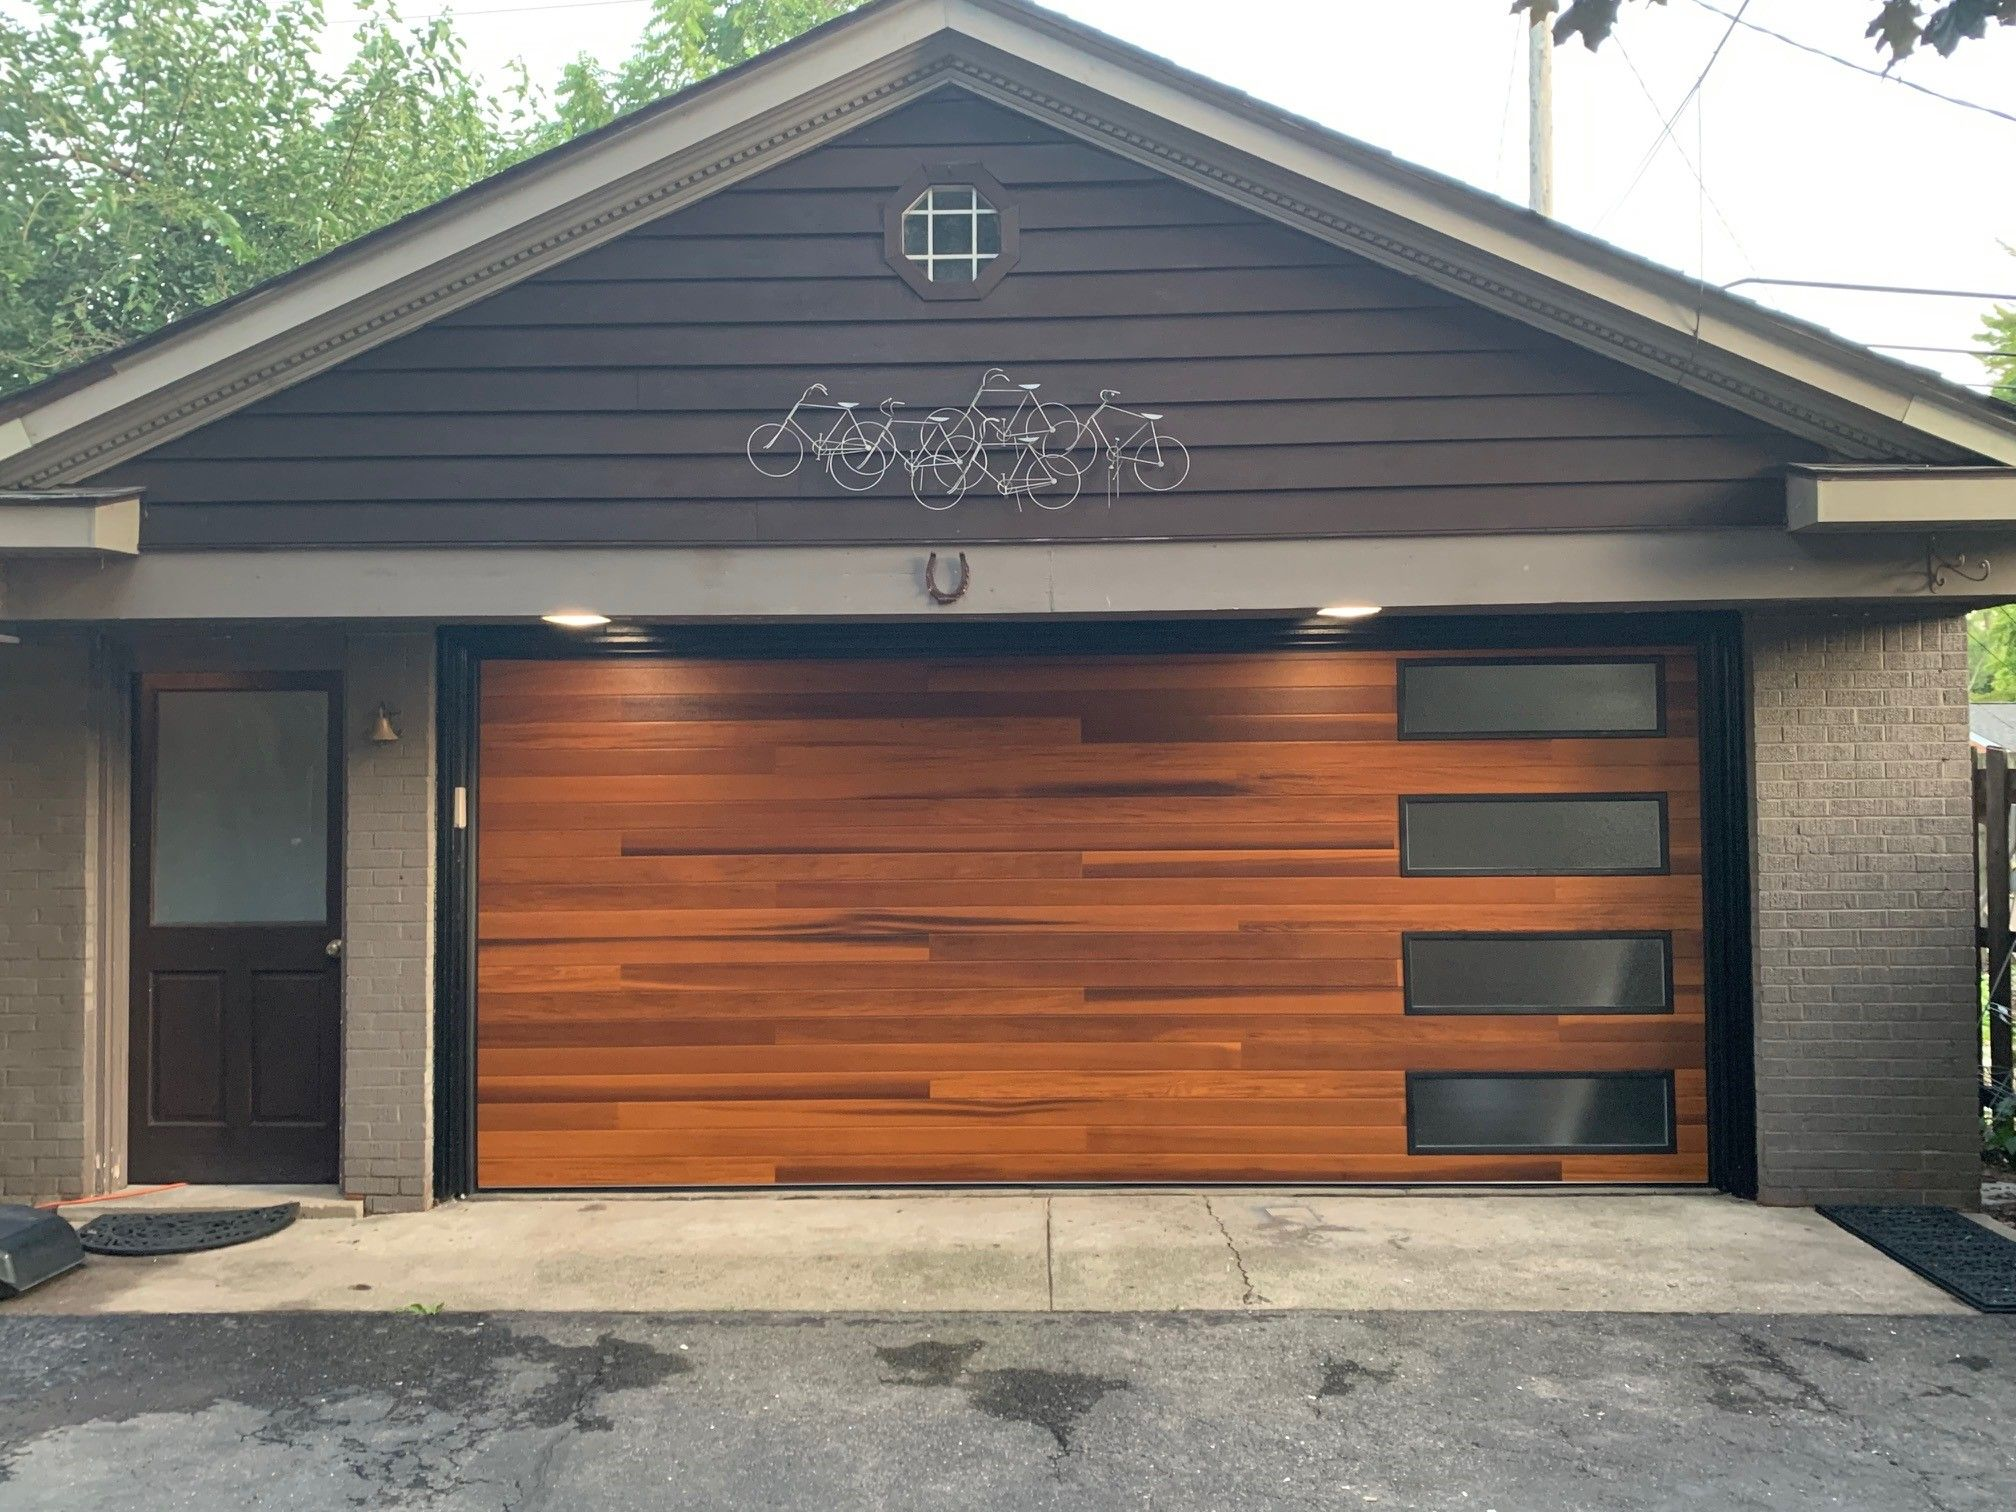 Planks Garage Door In Cedar Accents Woodtones By C H I Overhead Doors Garage Door Styles Garage Doors Modern Garage Doors